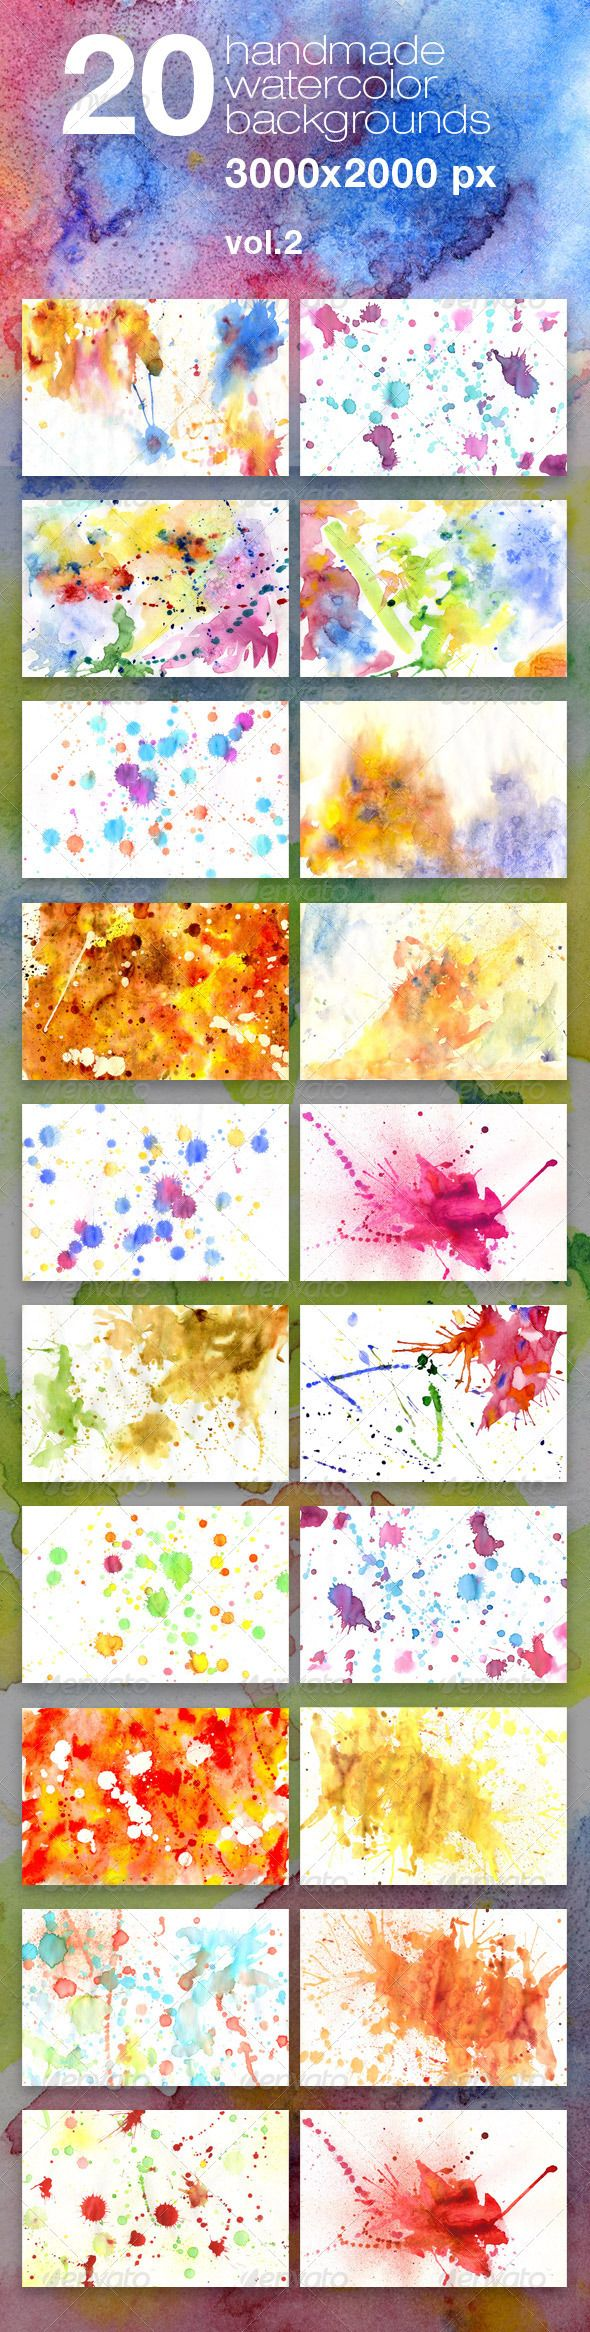 Graphic River 20 Handmade Watercolor Texture Backgrounds Textures -  Miscellaneous 460244